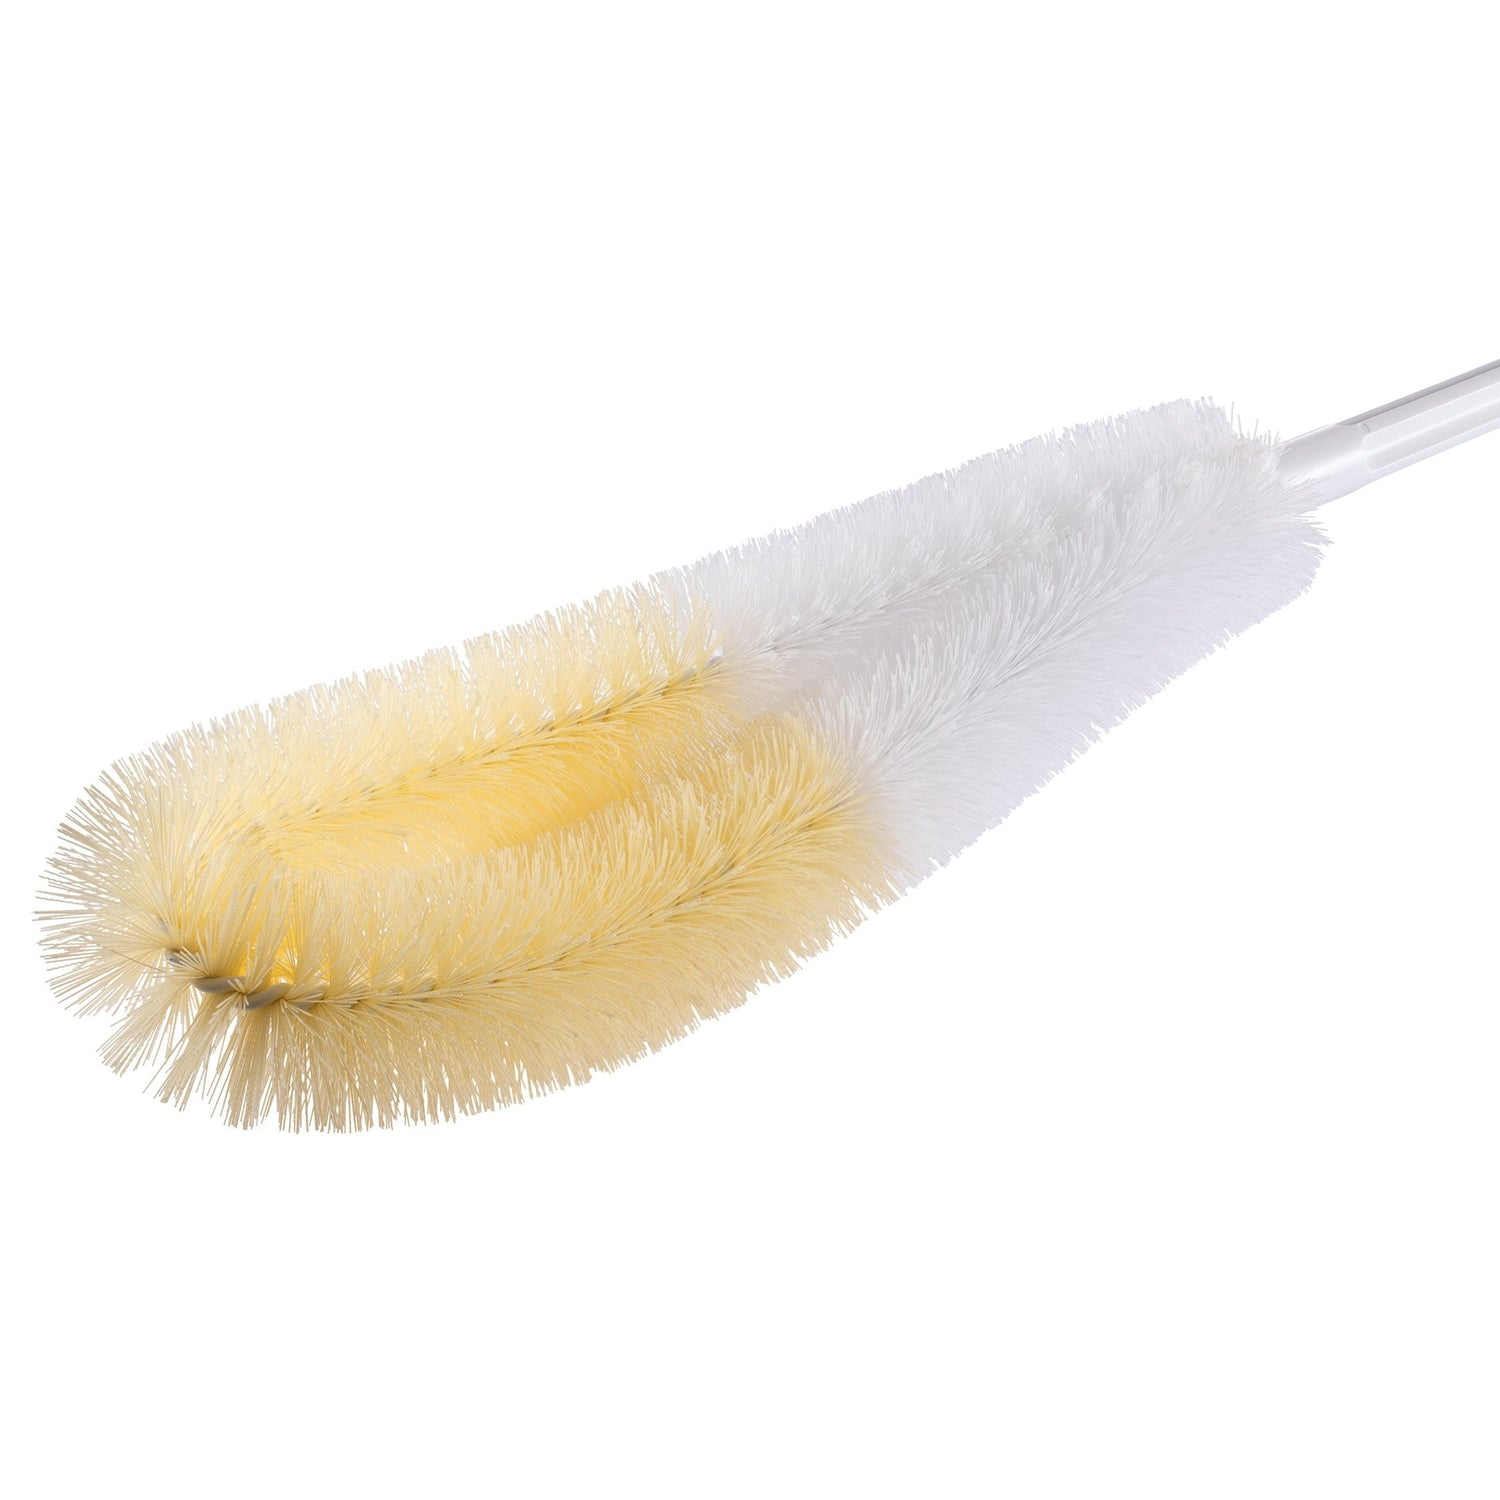 "Foot & Body Spa Brush Exfoliates the Skin 28.5 "" Long-Other Brushes-Fuller Brush Company"